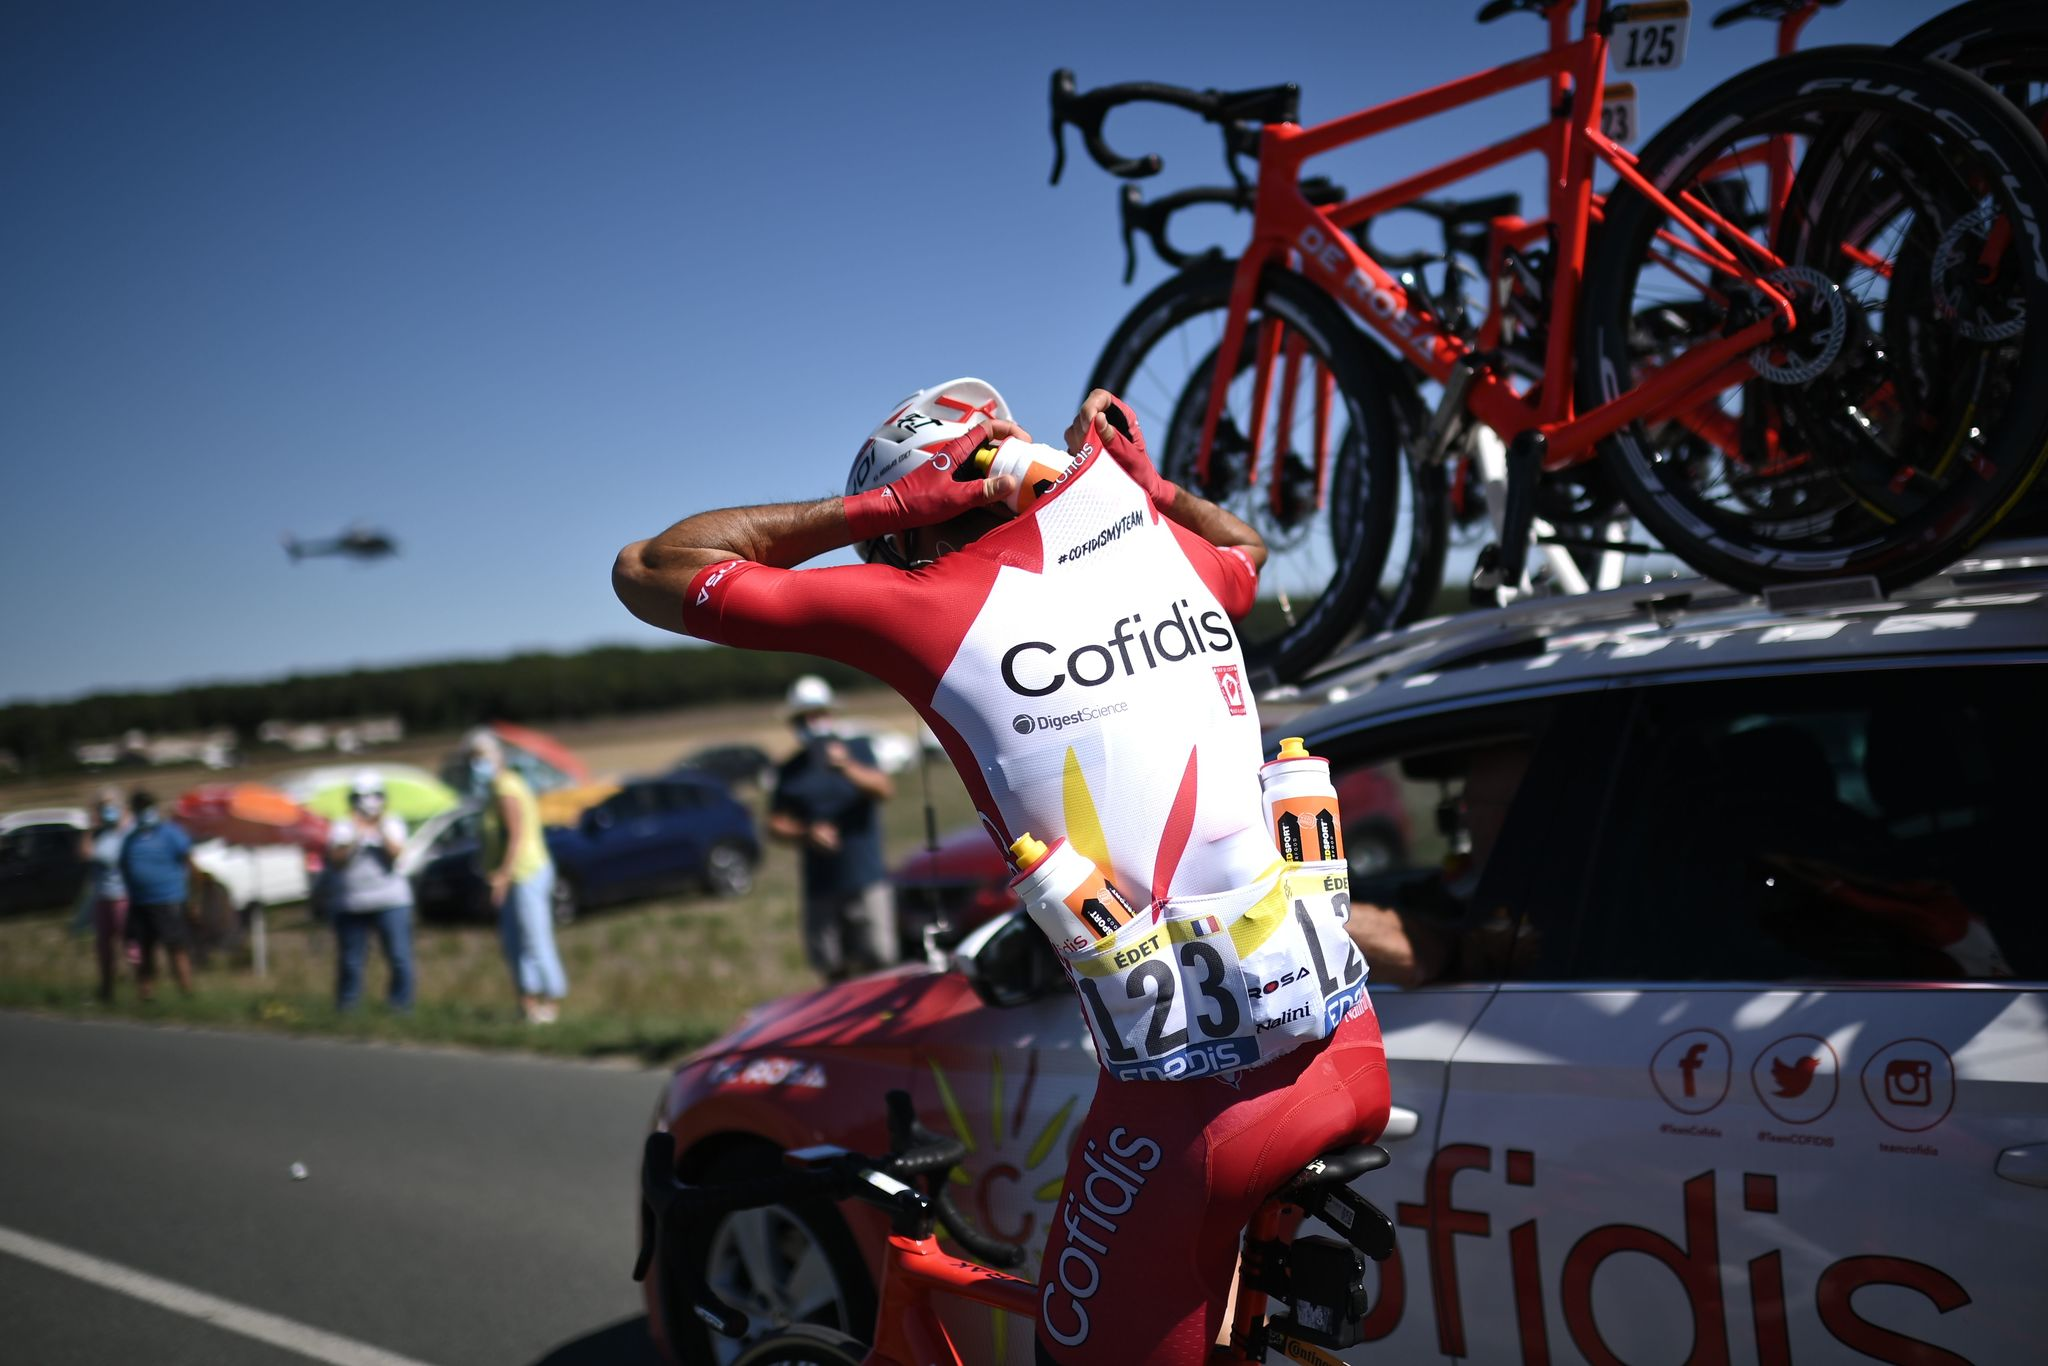 Team Cofidis rider France's Nicolas Edet loads water supplies during the 11th stage of the 107th edition of the lt;HIT gt;Tour lt;/HIT gt; de France cycling race, 167 km between Chatelaillon Plage and Poitiers, on September 9, 2020. (Photo by Marco BERTORELLO / AFP)